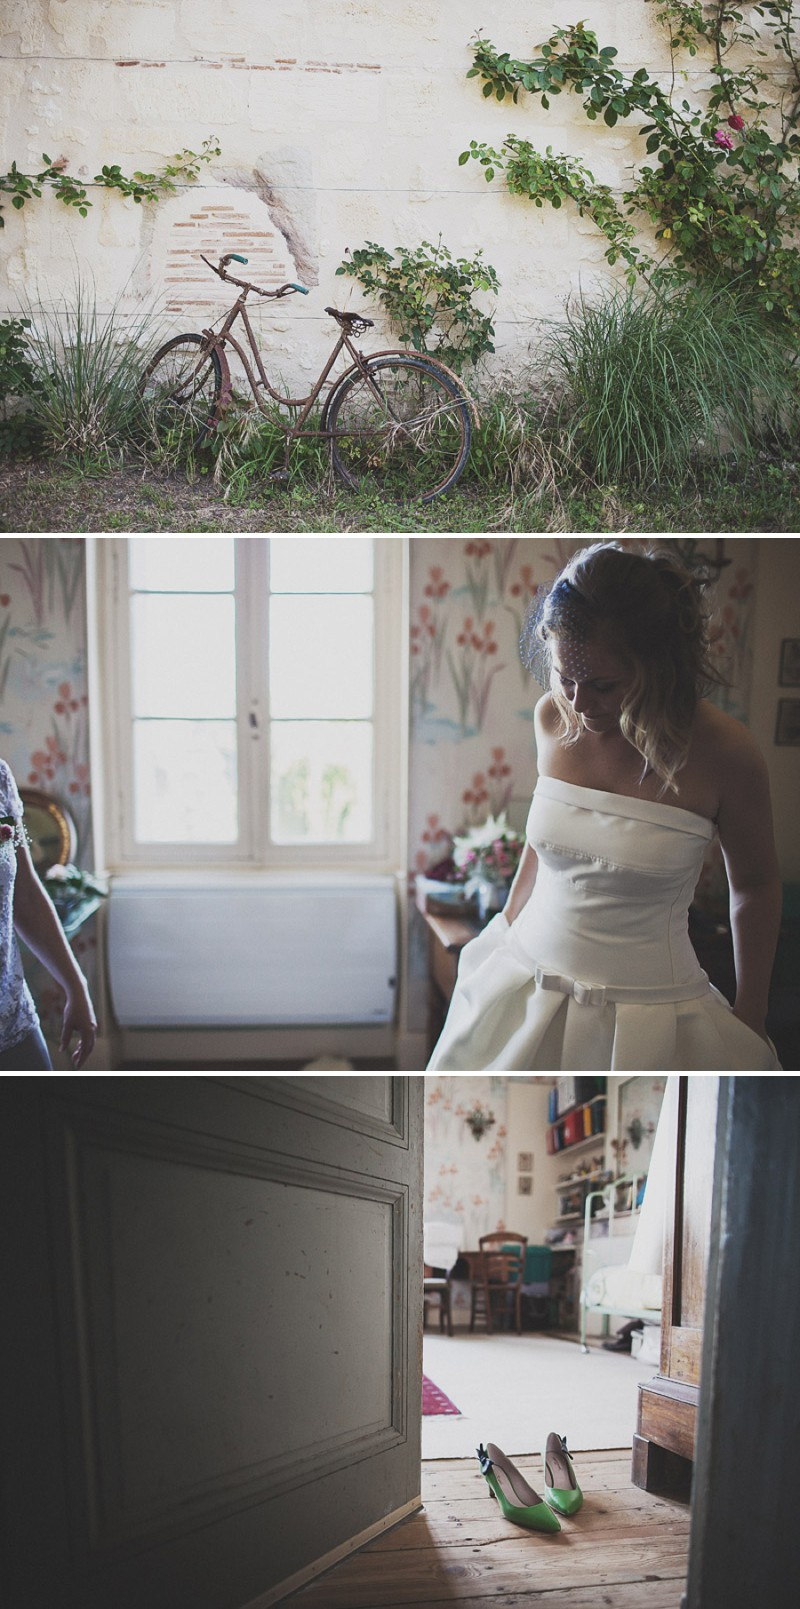 A Beautiful Rustic French Destination Wedding At Rivière de Prats In Gironde With A Rosa Clara Wedding Dress And A Pink Rose Bouquet And An Oyster And Cocktail Buffet By Anna Hardy Photography. 0001 Oysters By The Riverside.